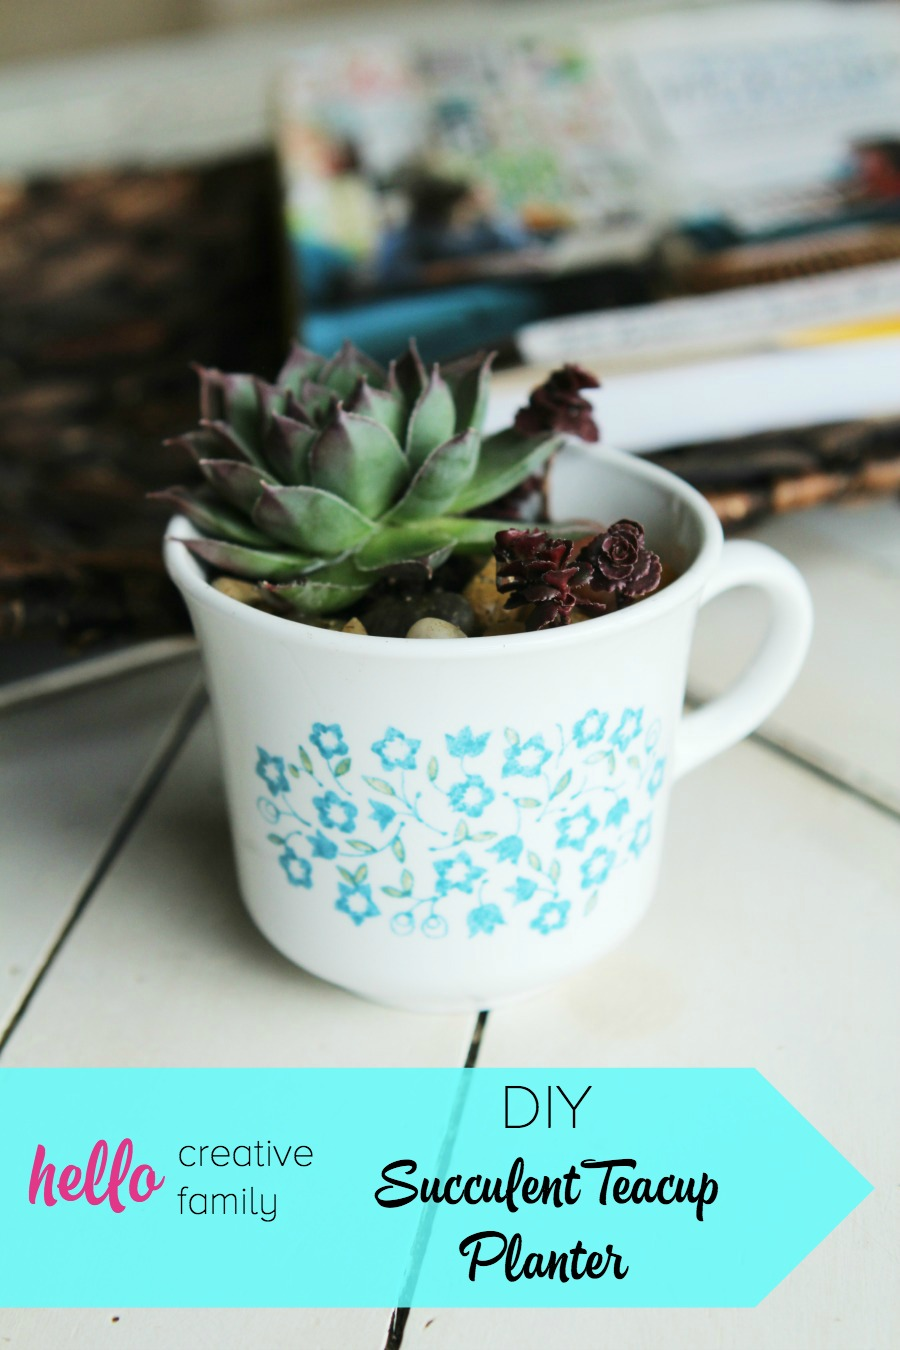 Large Tea Cup Planter Diy Succulent Teacup Planter Hello Creative Family